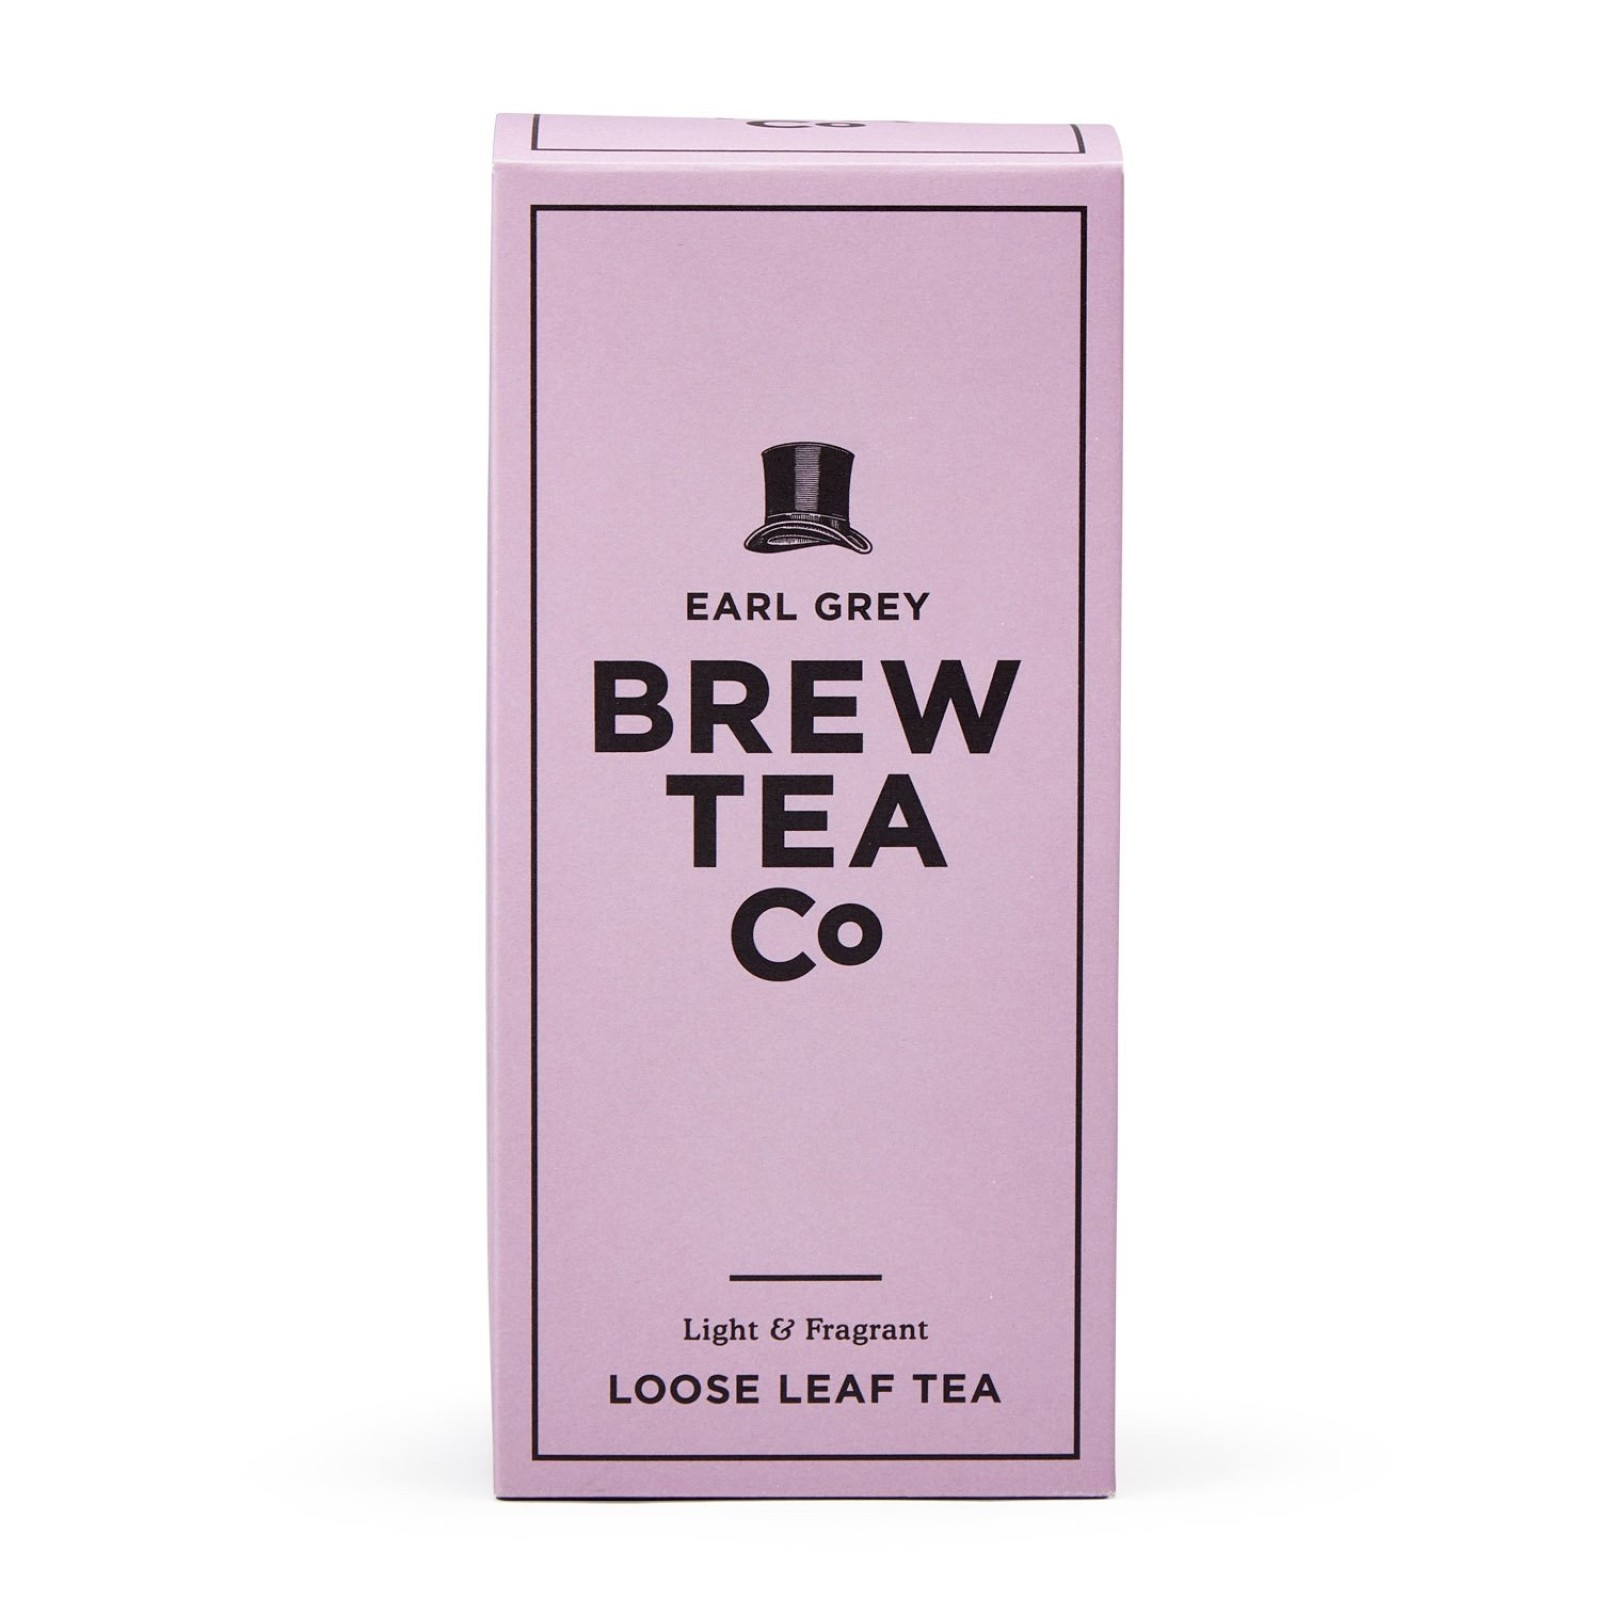 Earl Grey - Loose Leaf Tea 113g Brew Tea Co